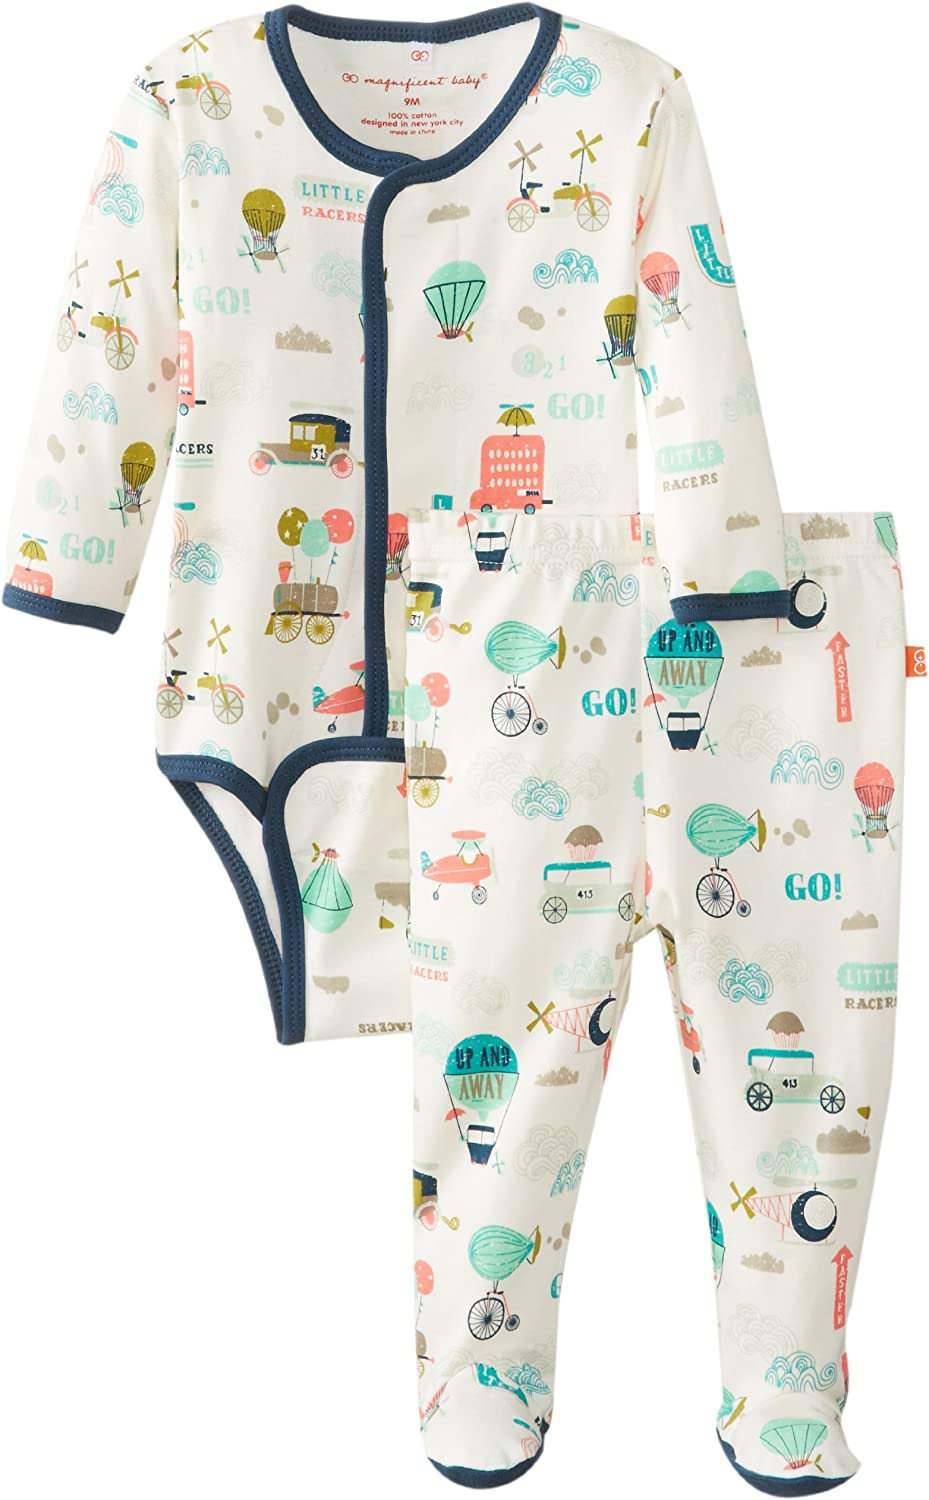 Magnificent Baby Baby-Boys Newborn Long-Sleeve Bodysuit and Pants Set